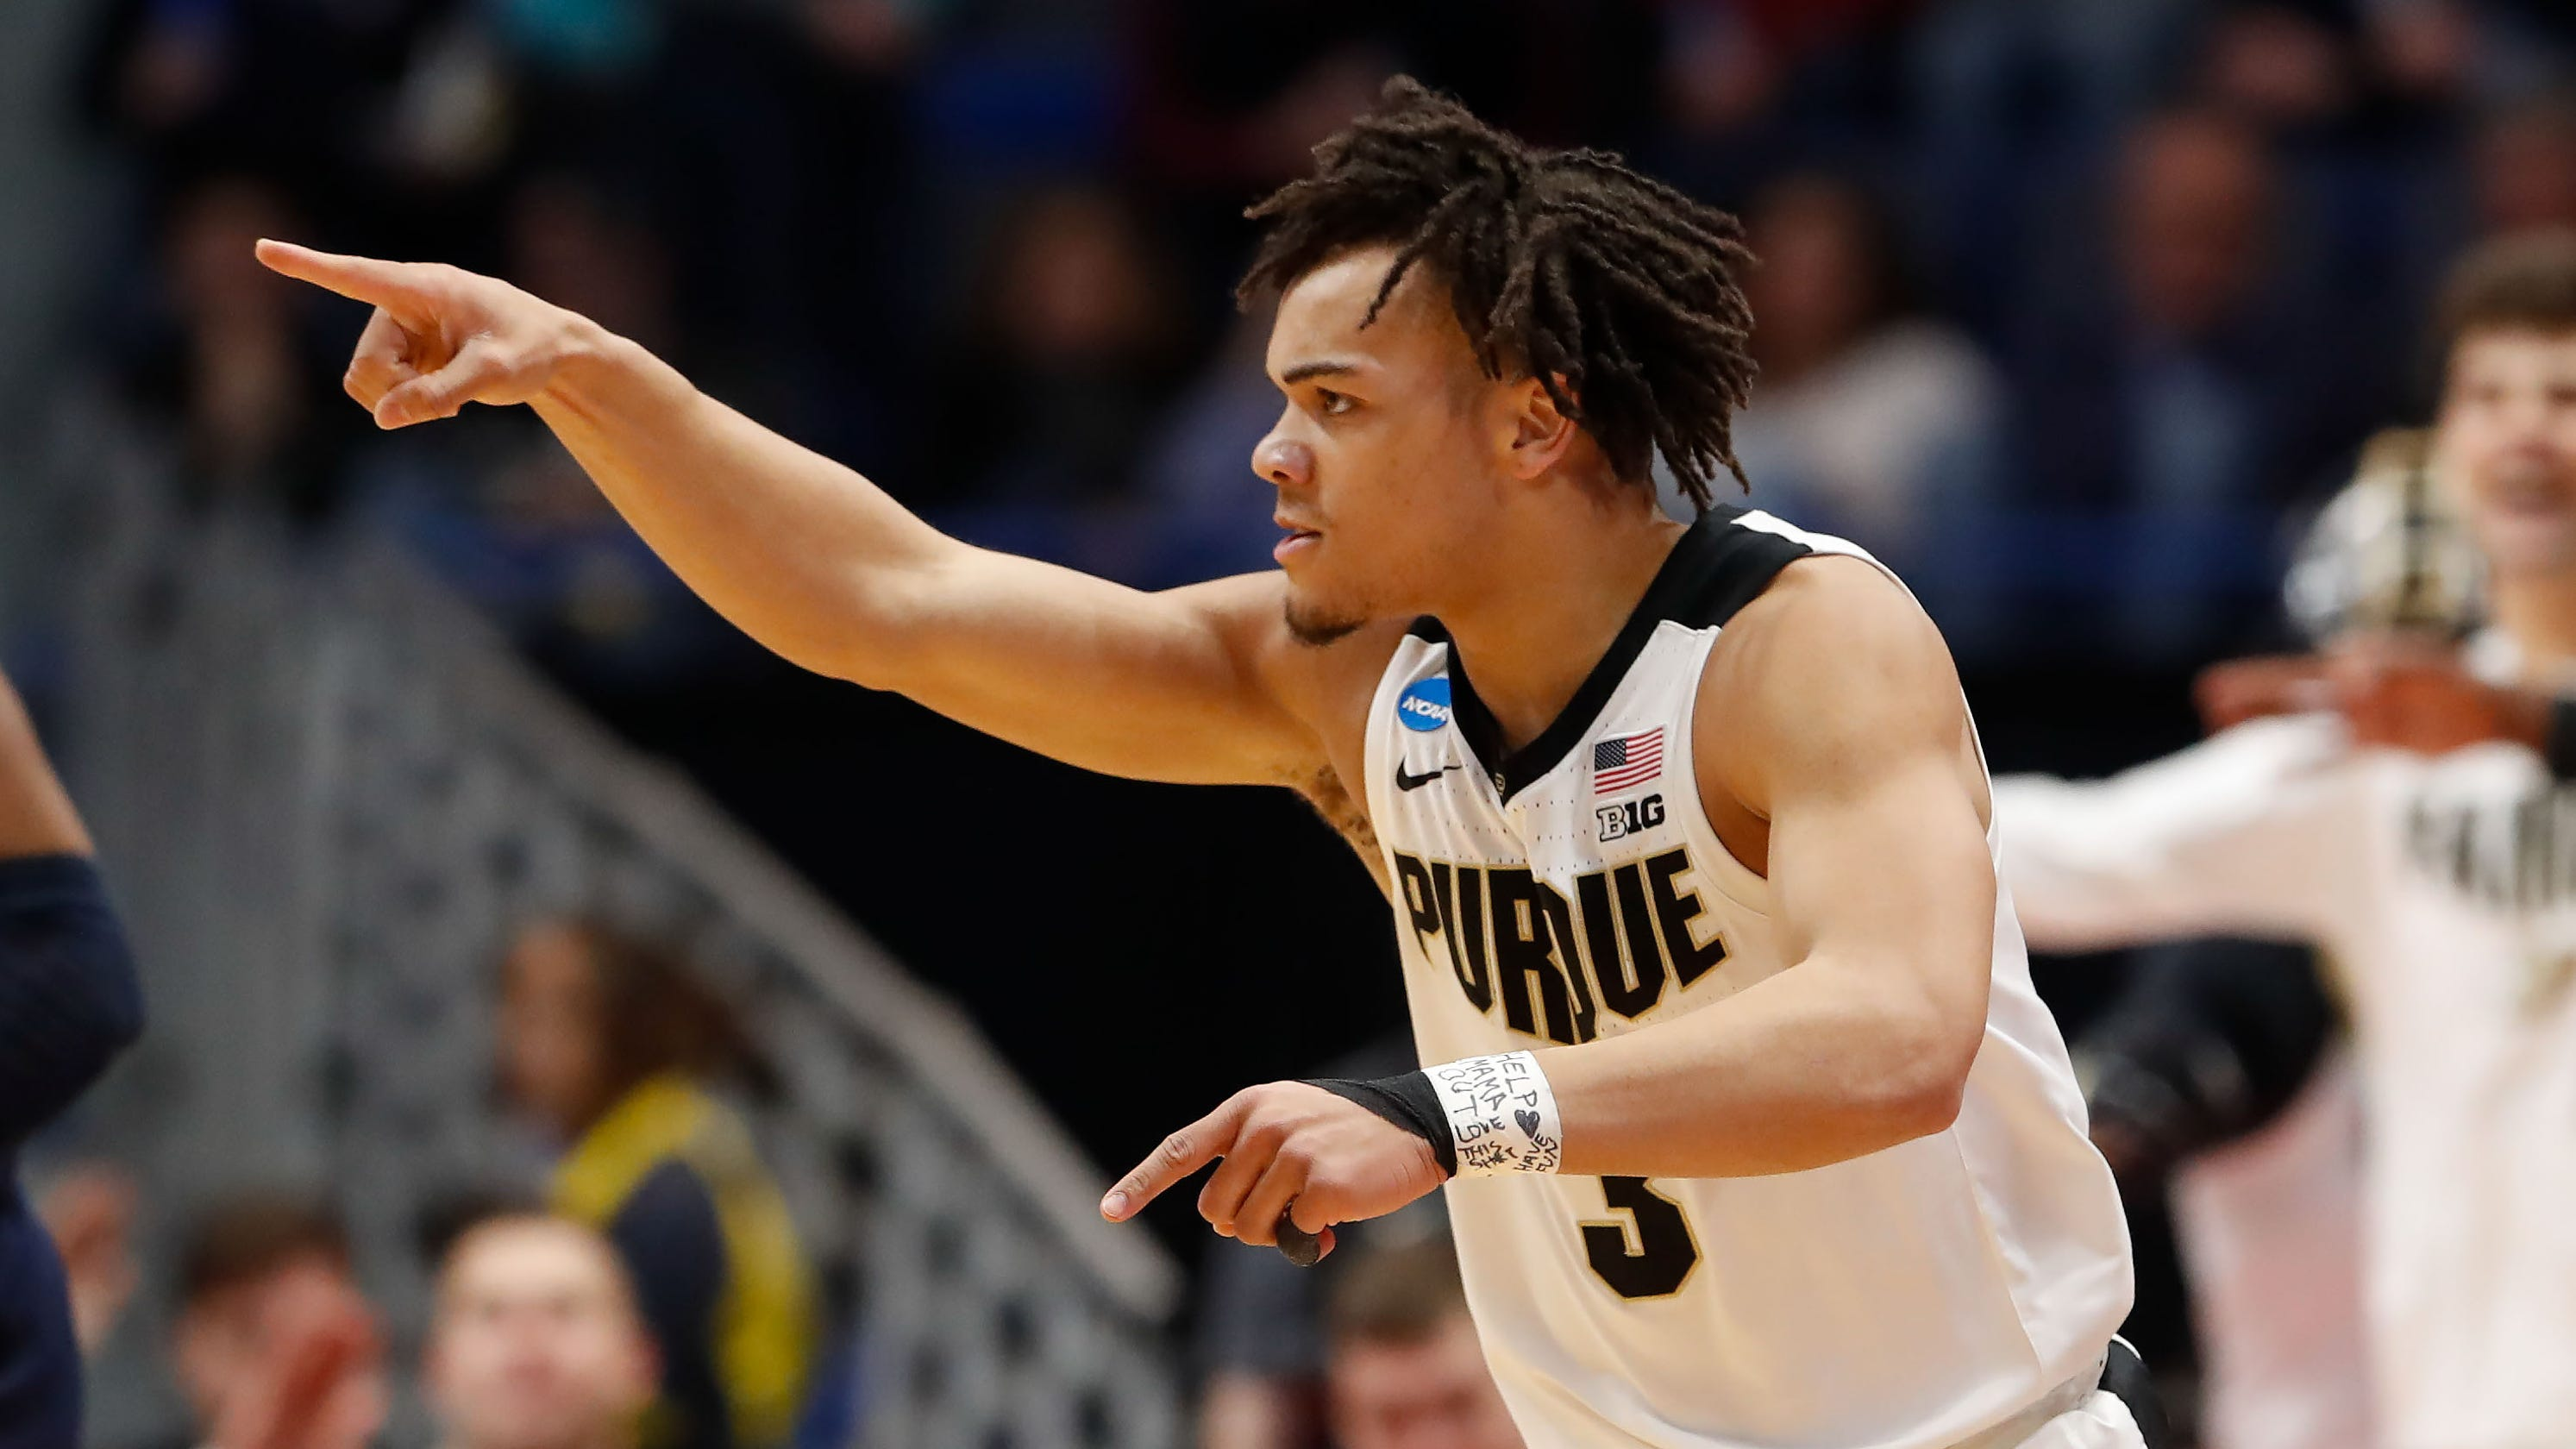 Carsen Edwards Ends Slump And Villanova Shooting Purdue Into Sweet 16